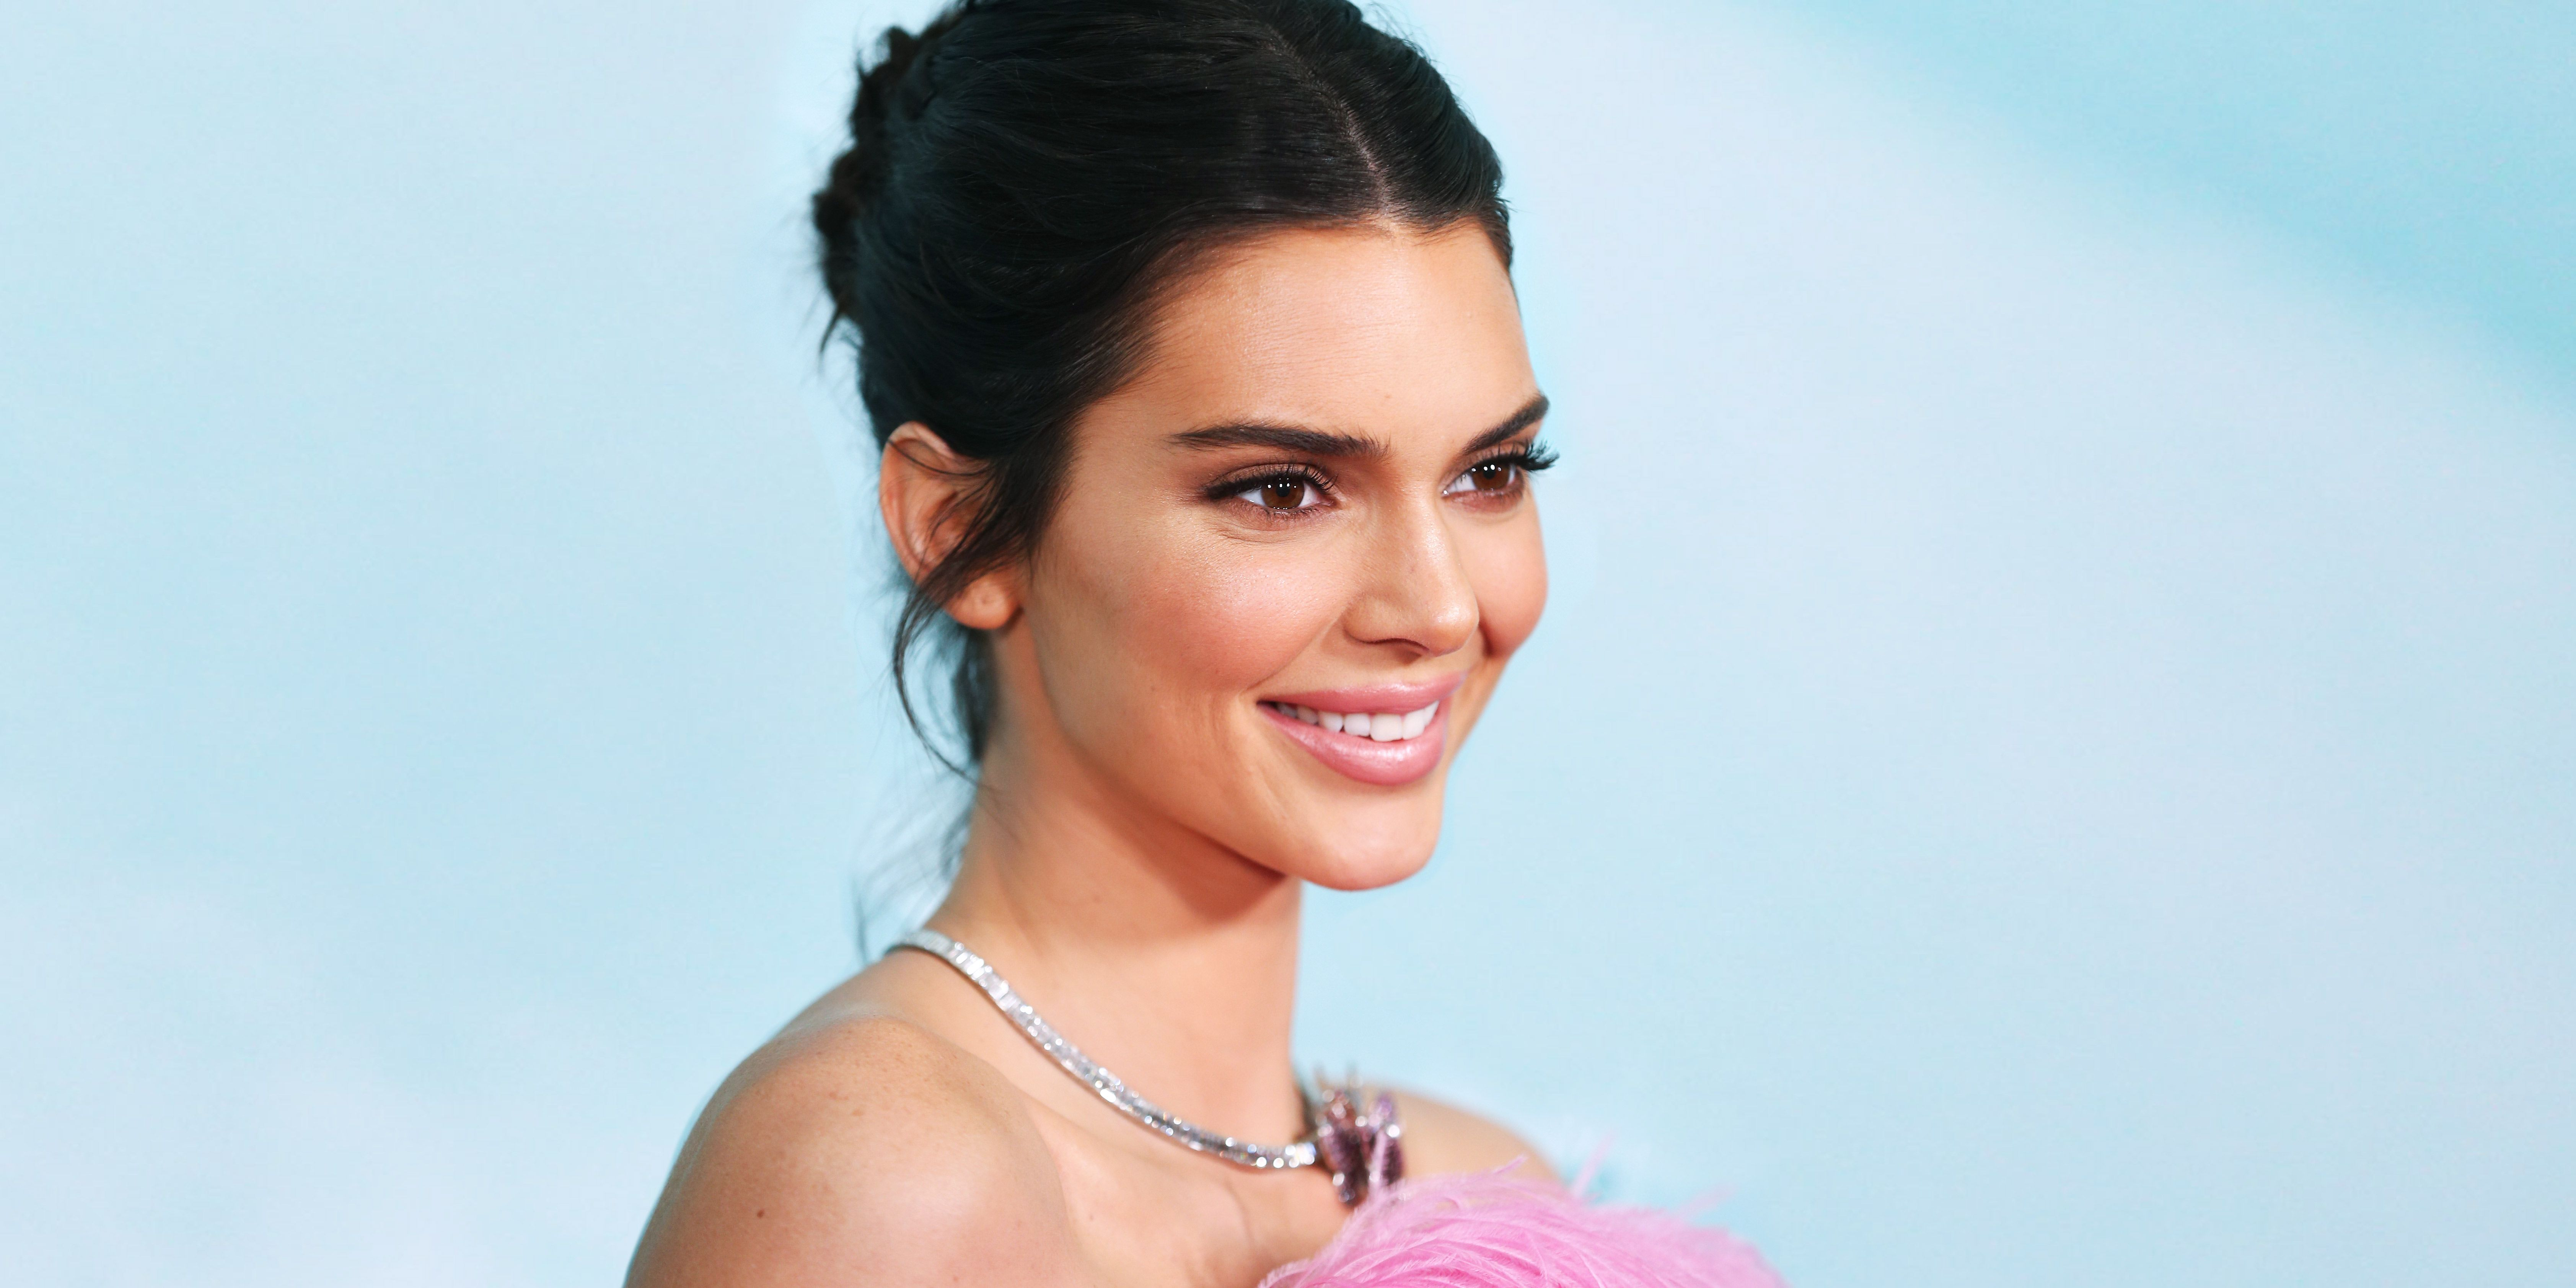 Kendall Jenner Shared With Me Her Teeth Whitening Tips And 2019 Vibe